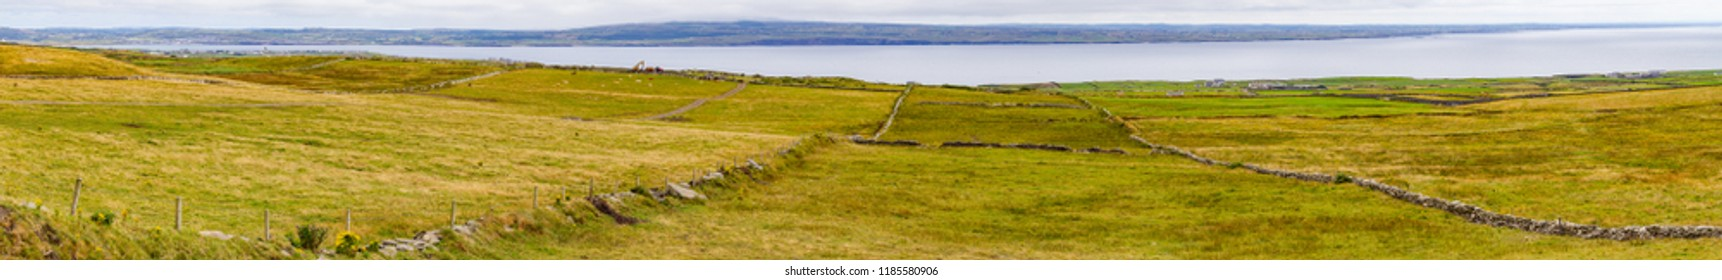 Panorama of Farms field in Cliffs of Moher with Lahinch and Licannor villages in background, Doolin, Clare, Ireland